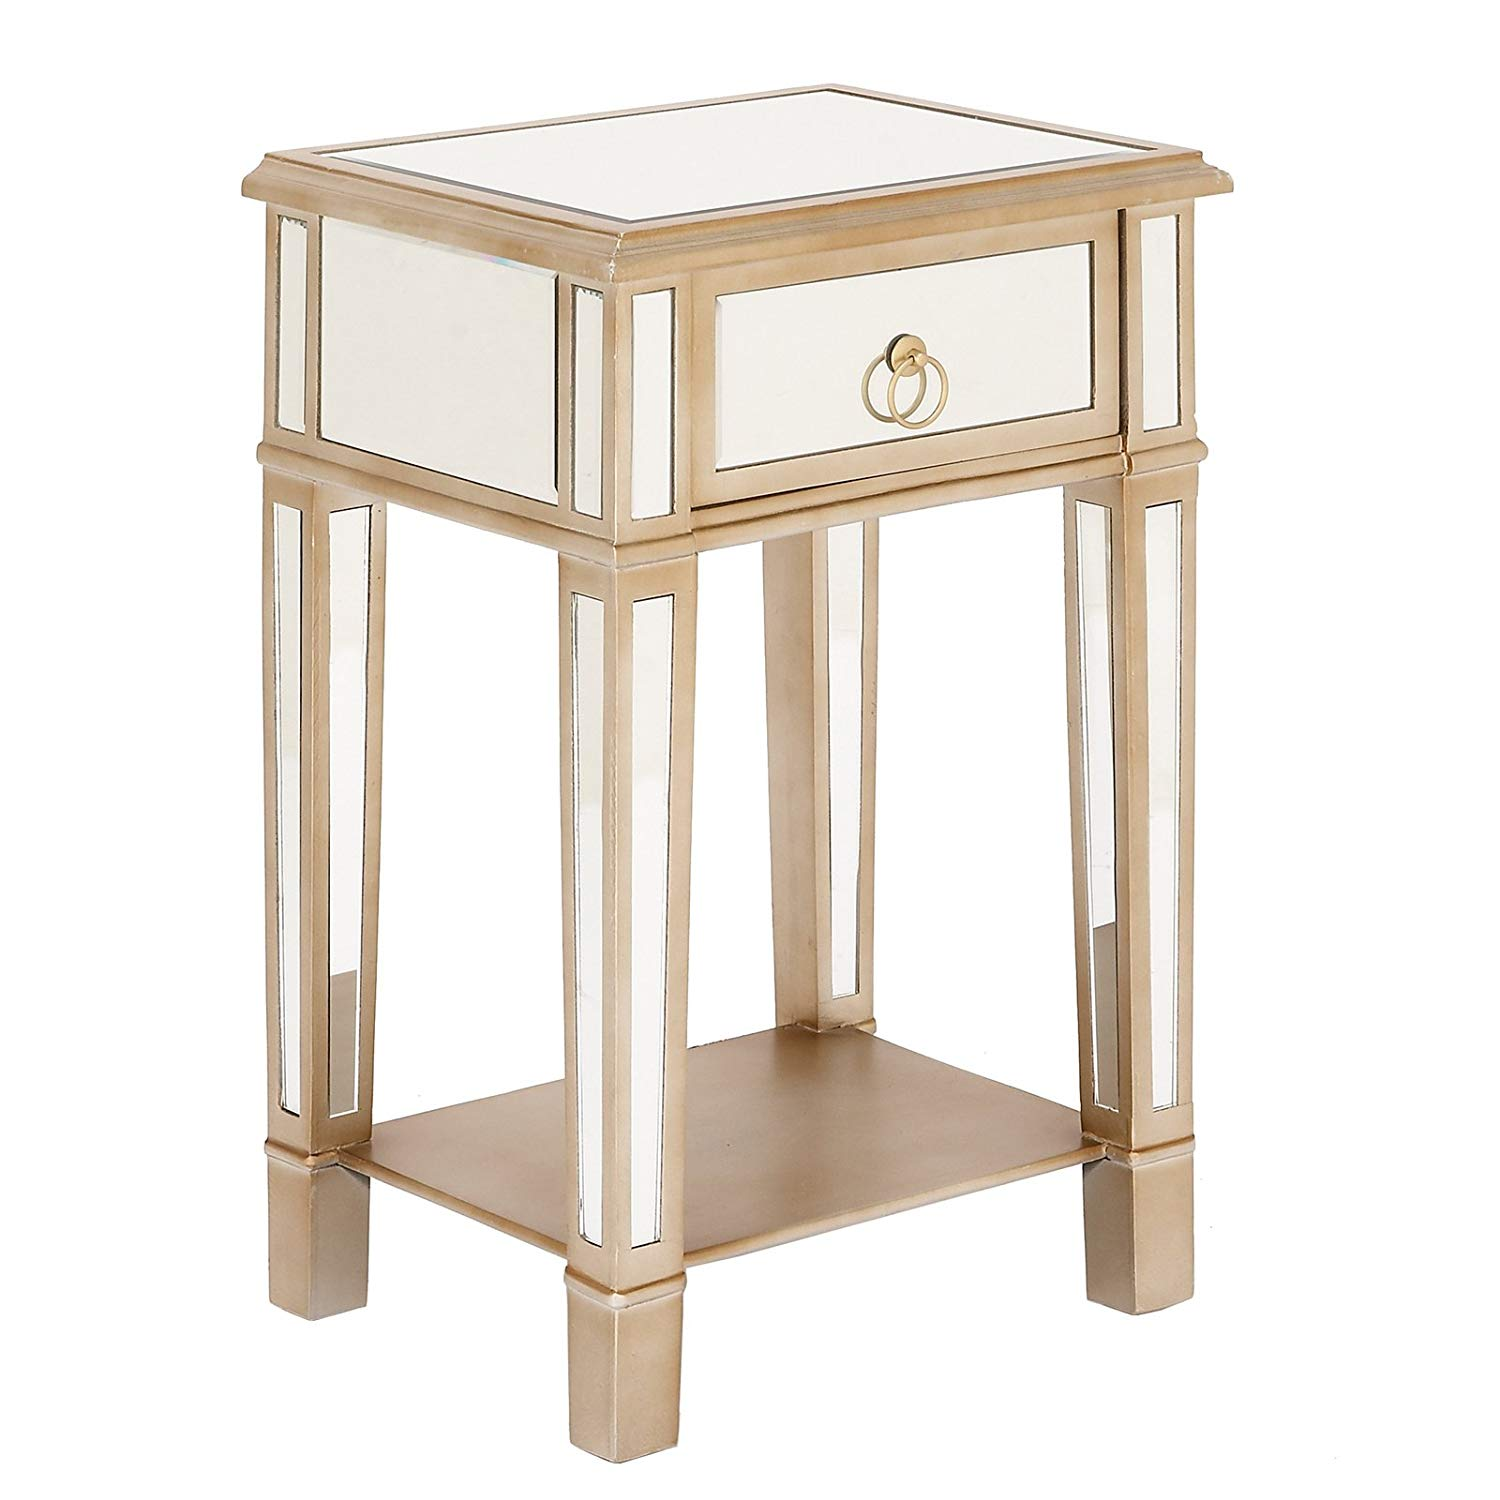 urban designs imported christie wooden mirror side mirage mirrored accent table nightstand with drawer door console cabinet white bedroom inch round tablecloth art deco armchair